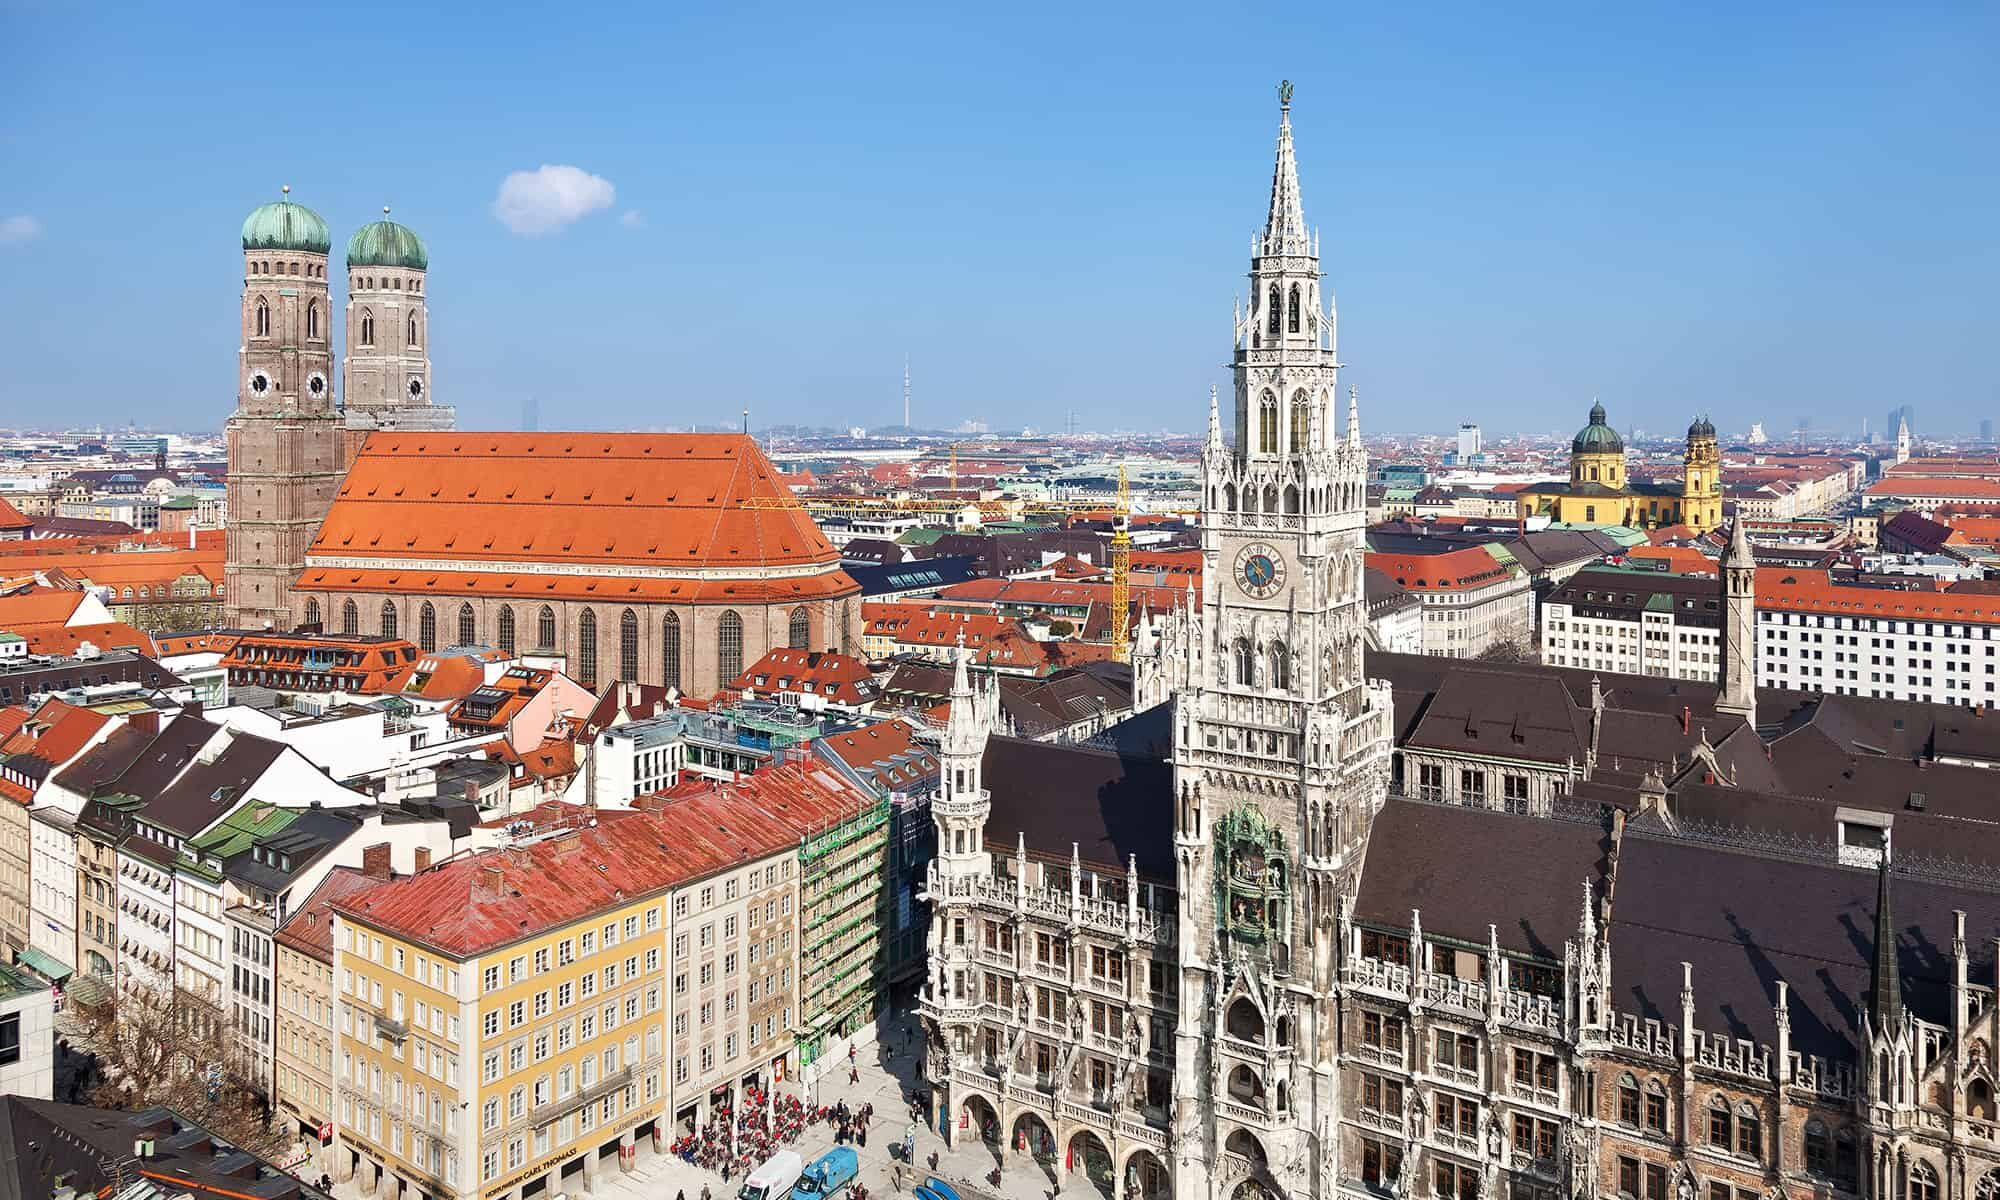 Munich - Learn German fast in a targeted, personal way with live online video sessions